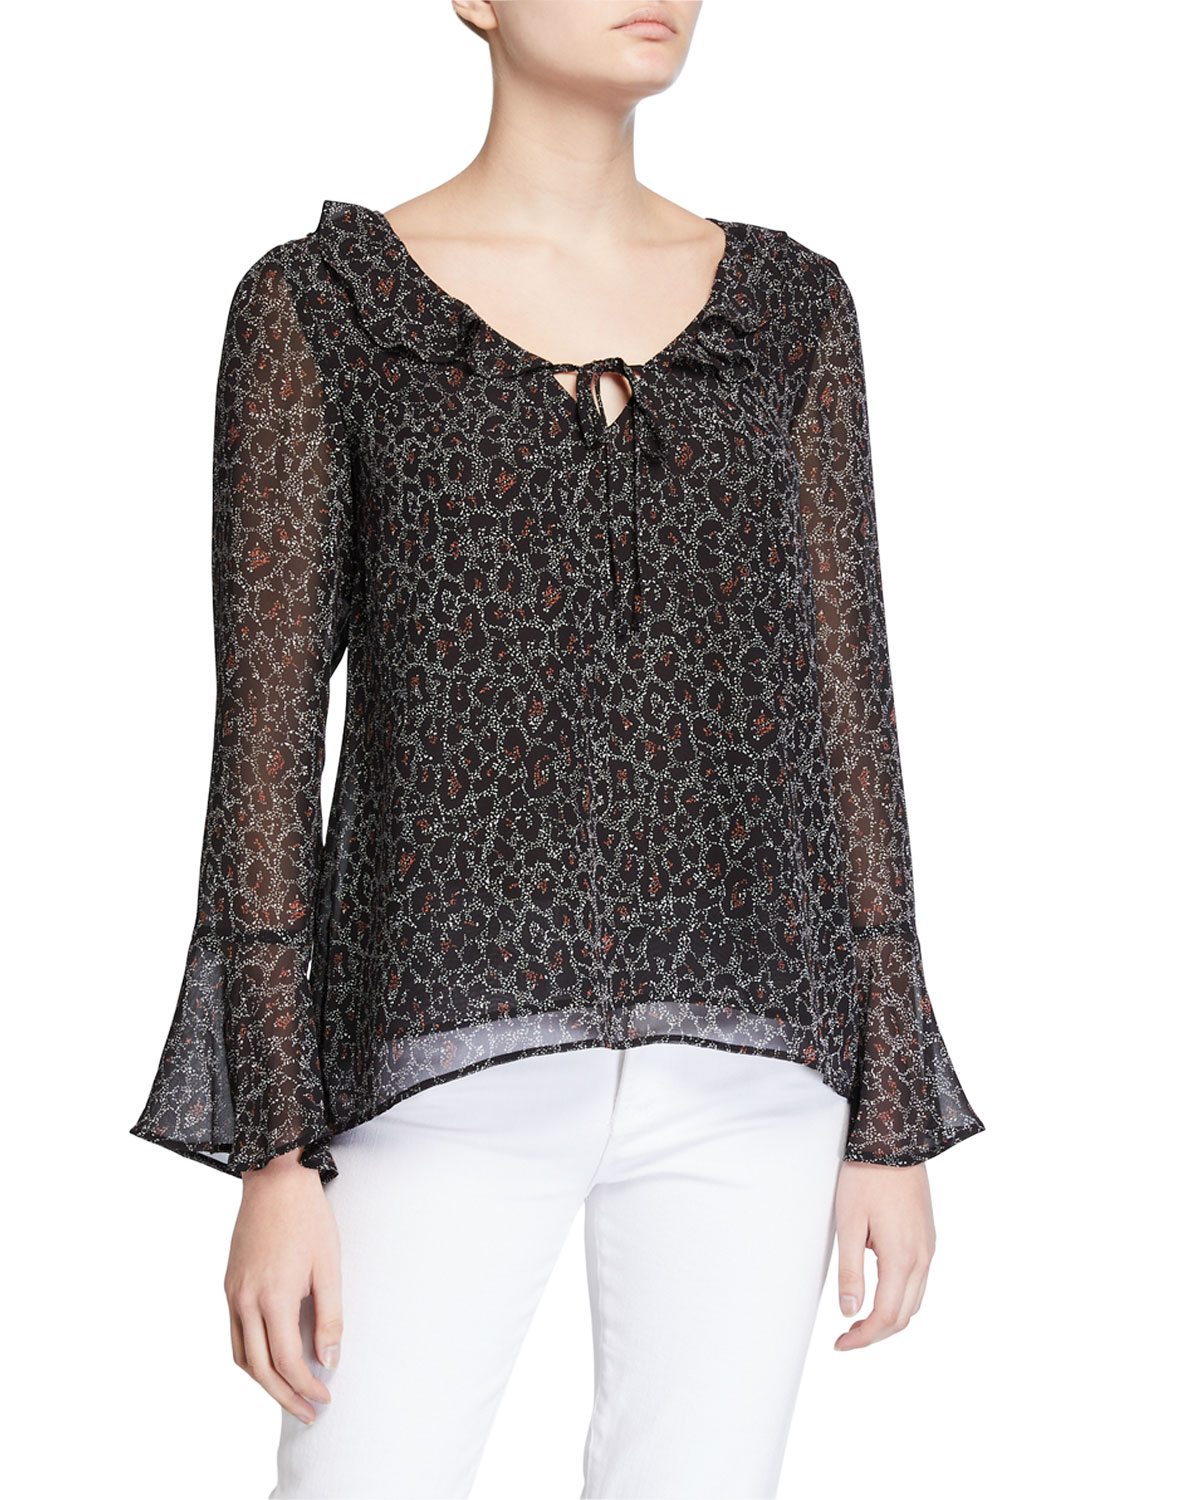 Cupcakes And Cashmere Tops MARSEILLE LEOPARD TOP